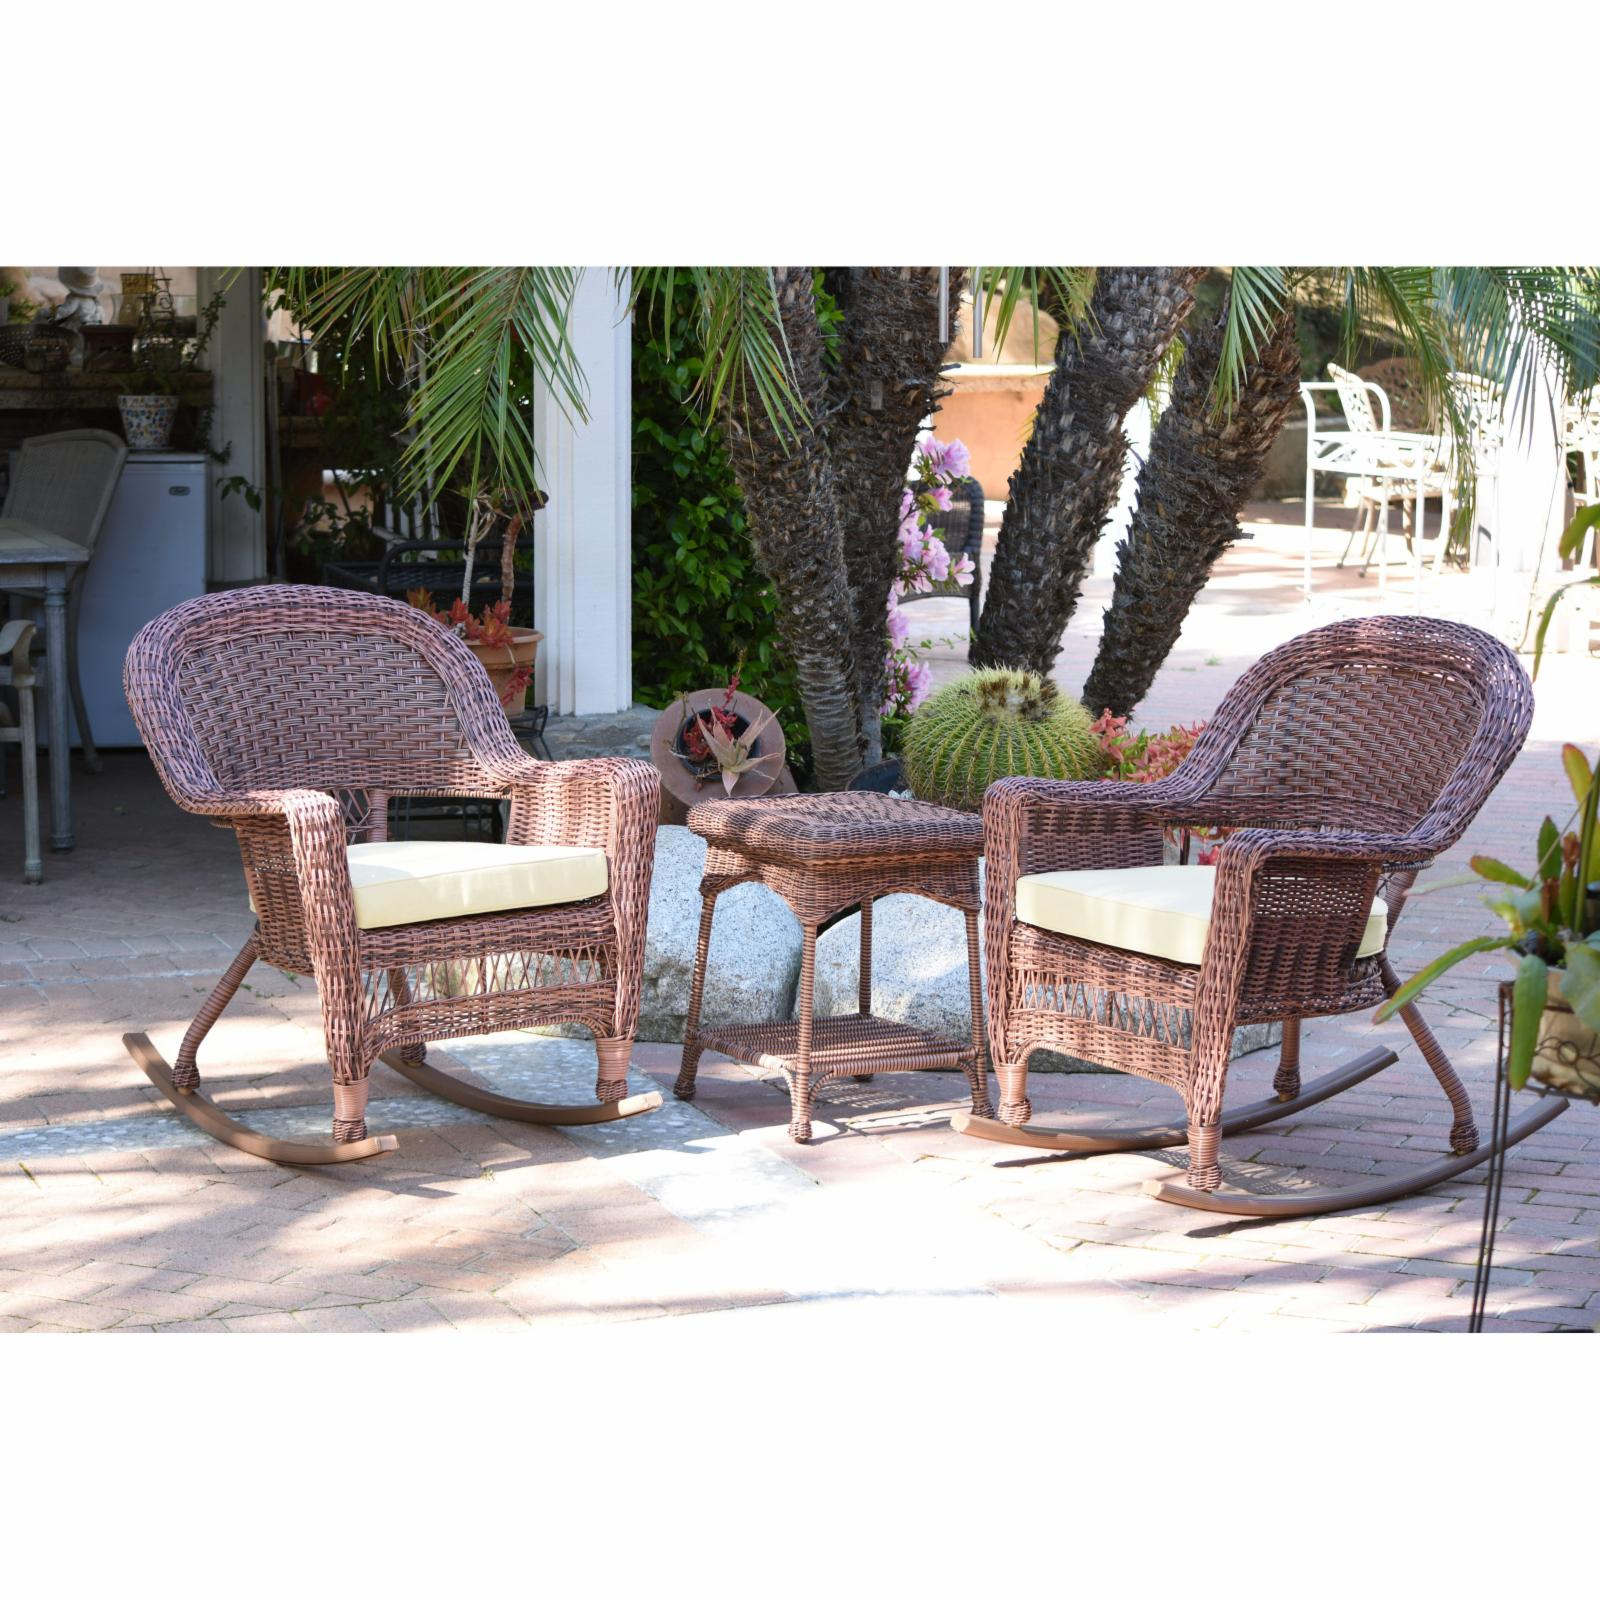 Outdoor Jeco 3 pc. Wicker Rocker Chair Set with Side Tabl...